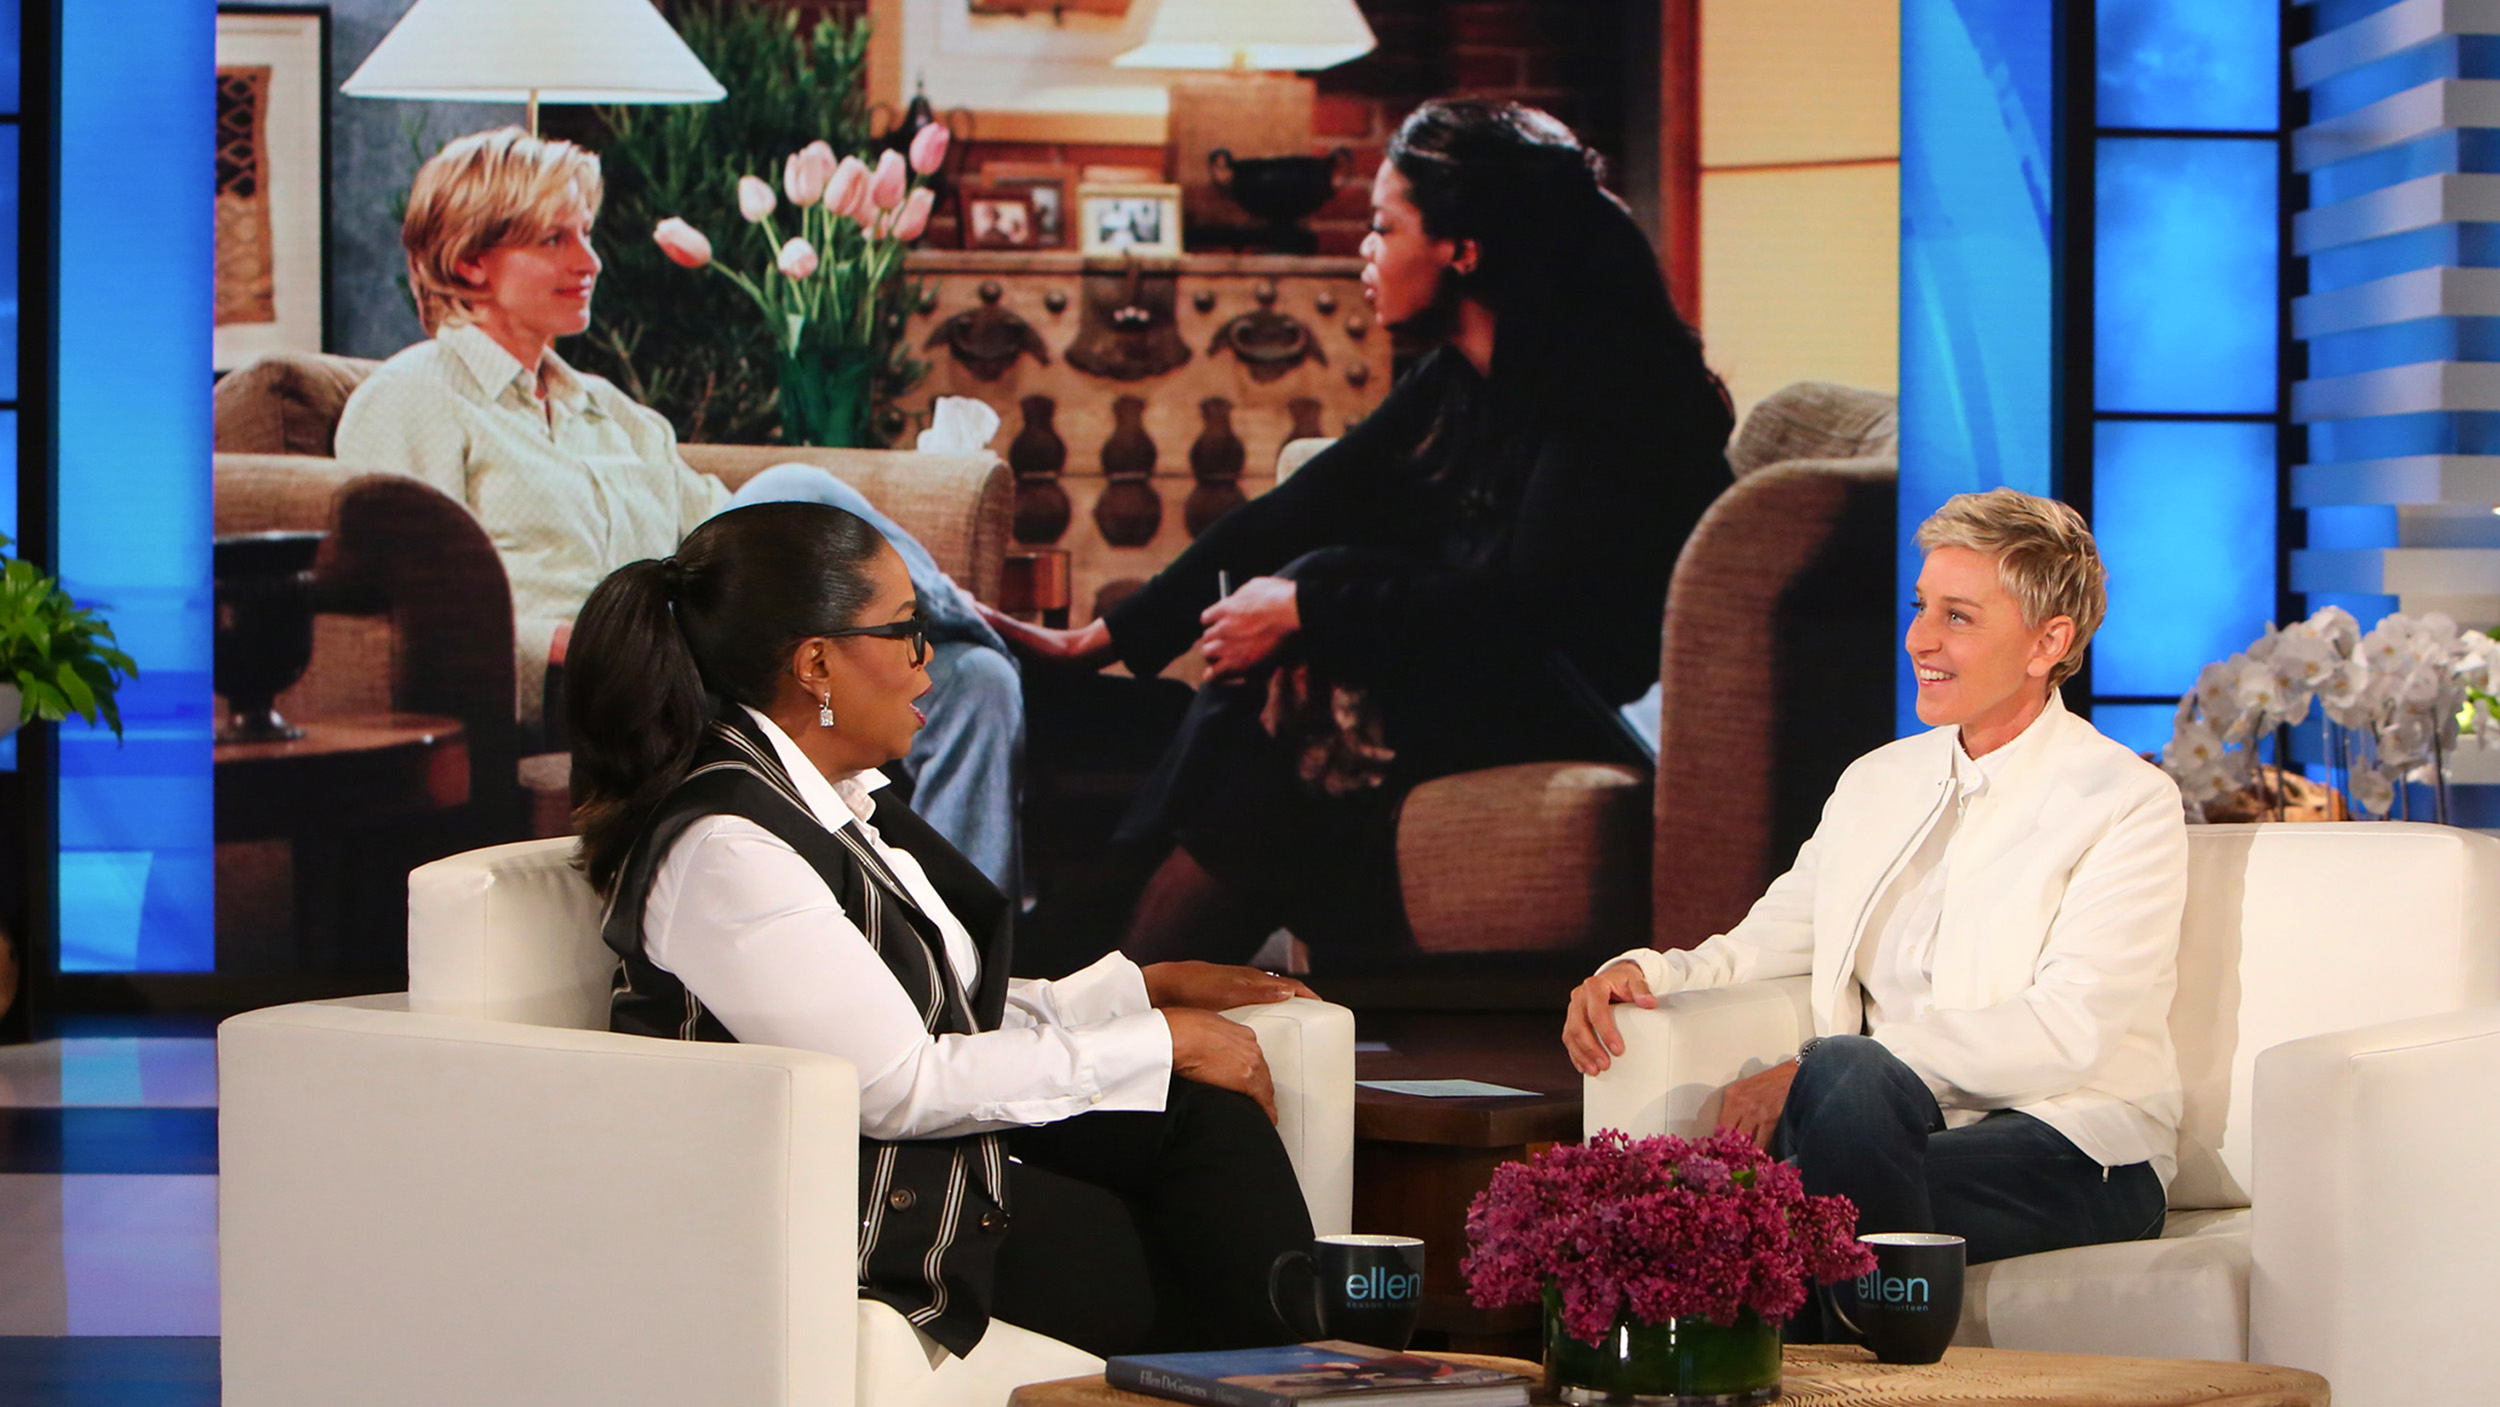 Oprah Winfrey and Ellen DeGeneres on The Ellen DeGeneres Show